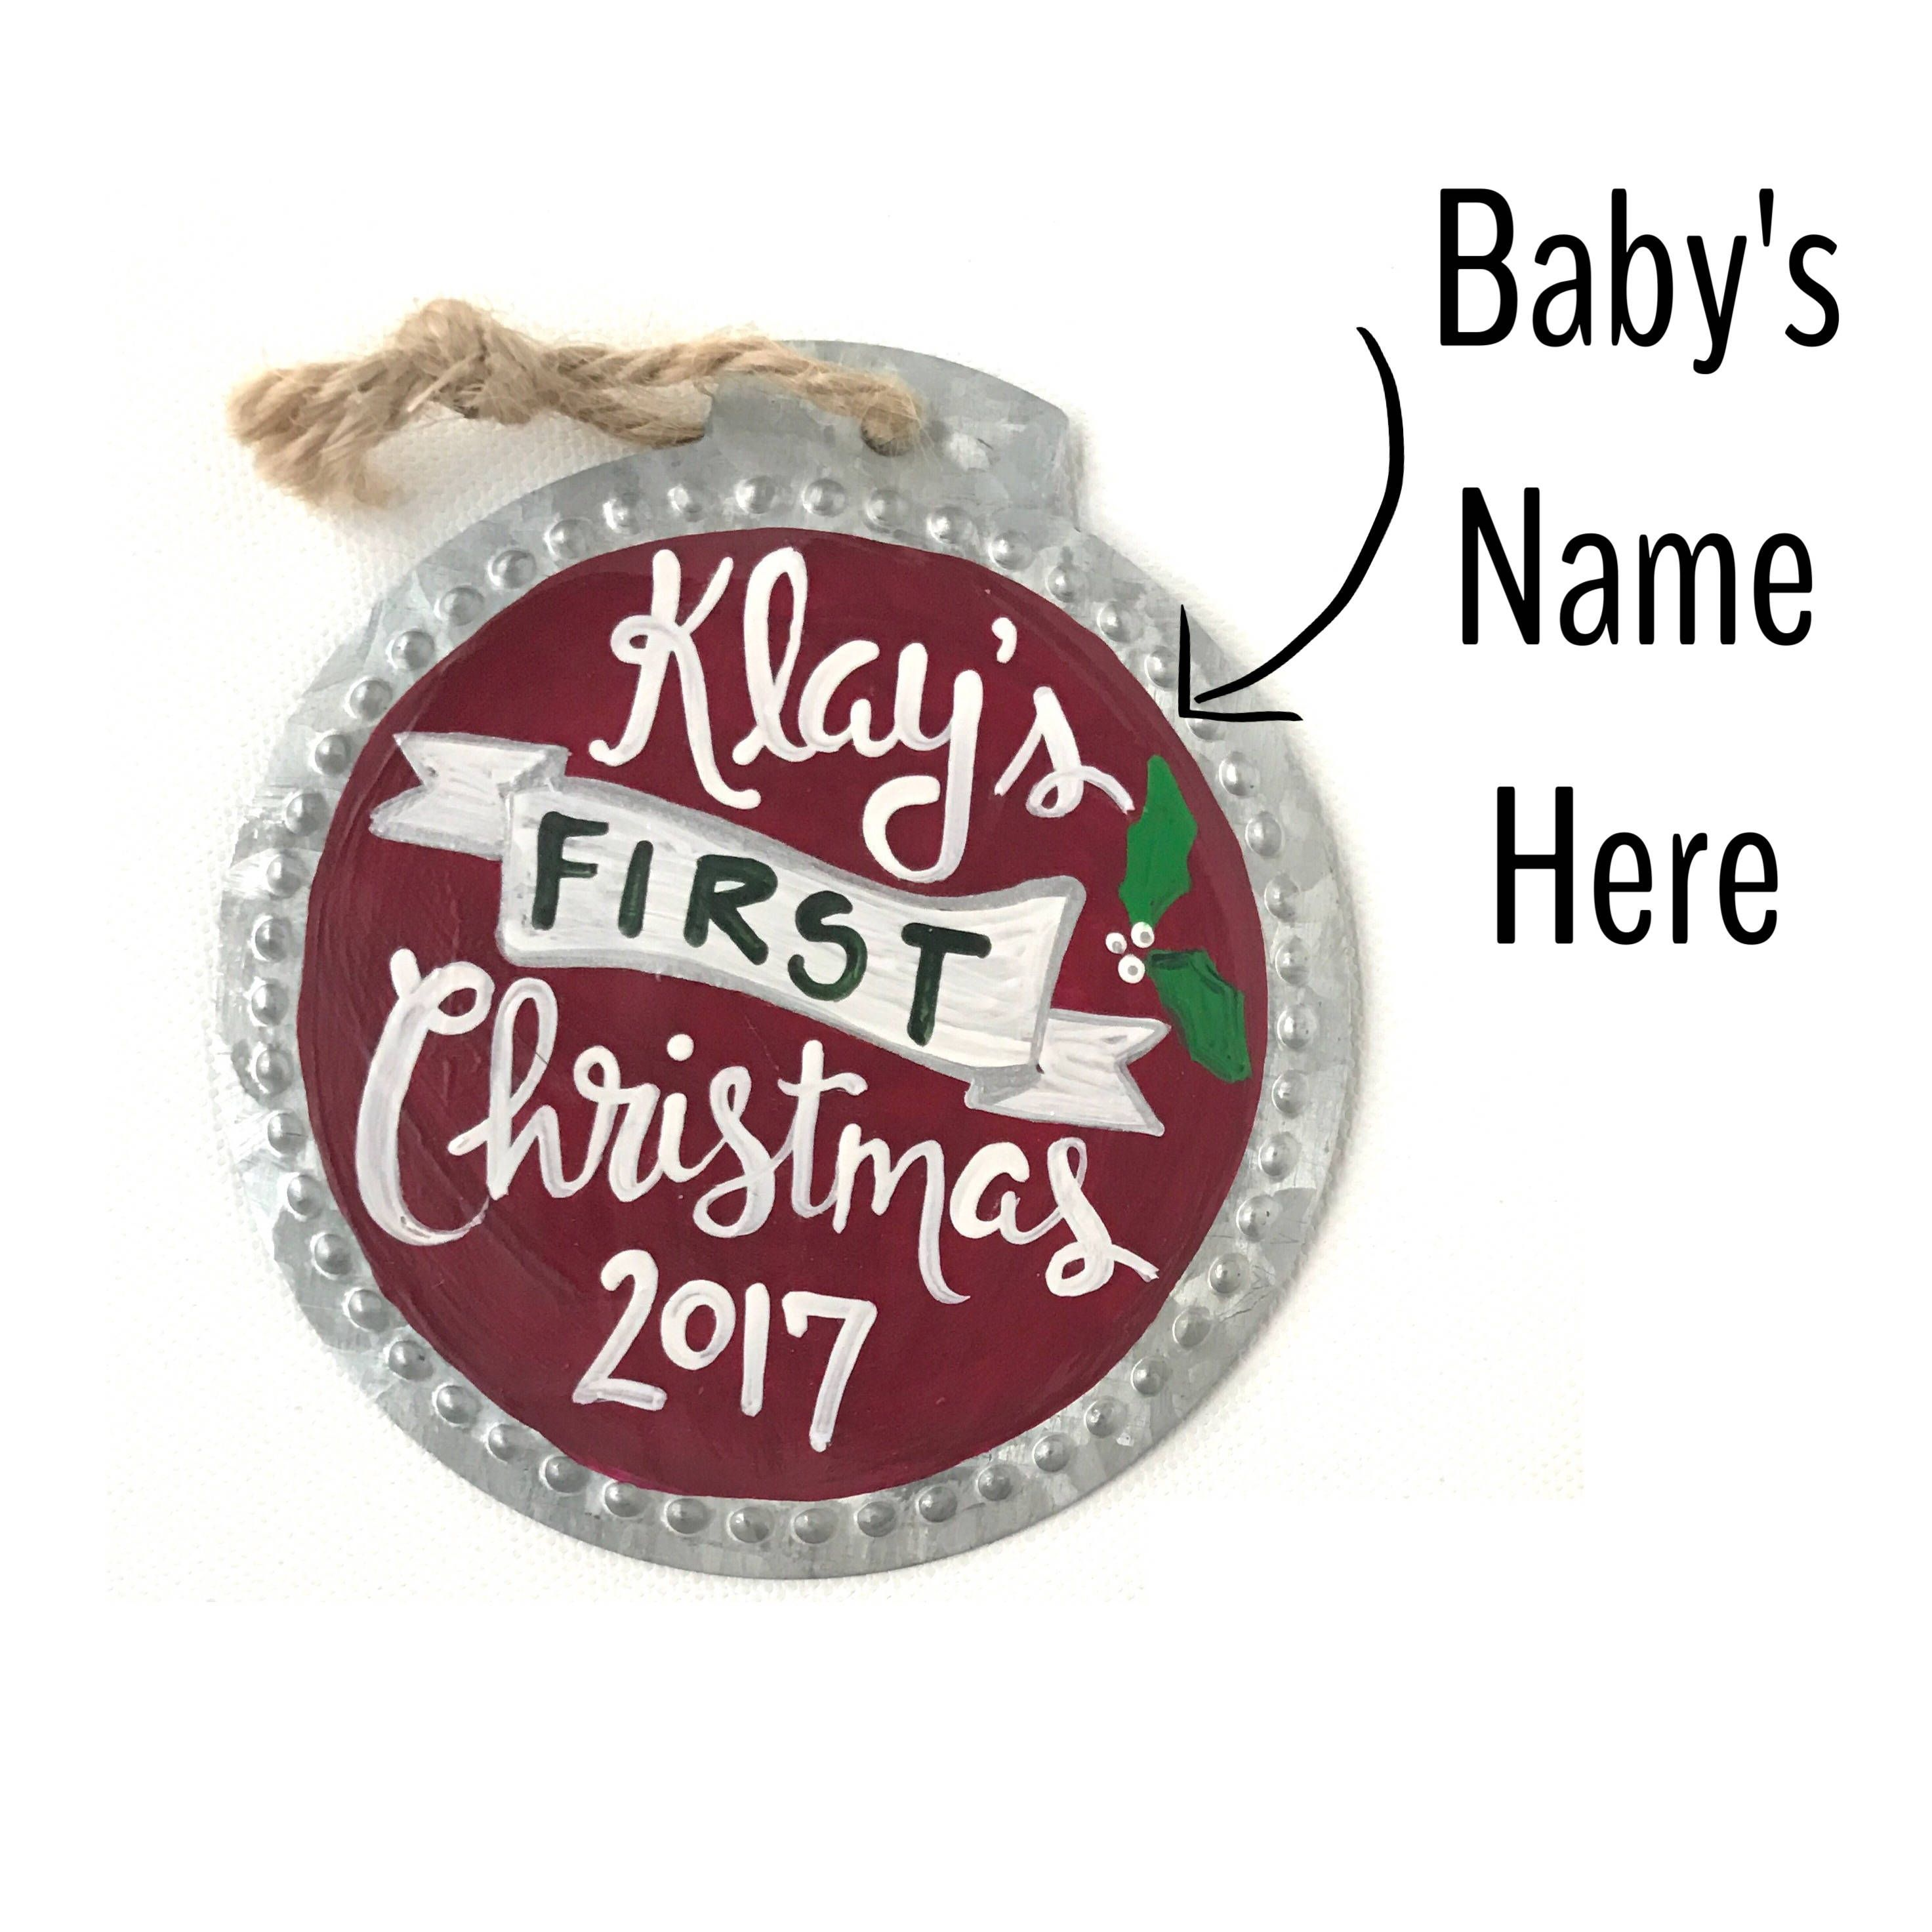 Babys First Christmas Ornament Baby Ornament Custom First Christmas Ornament